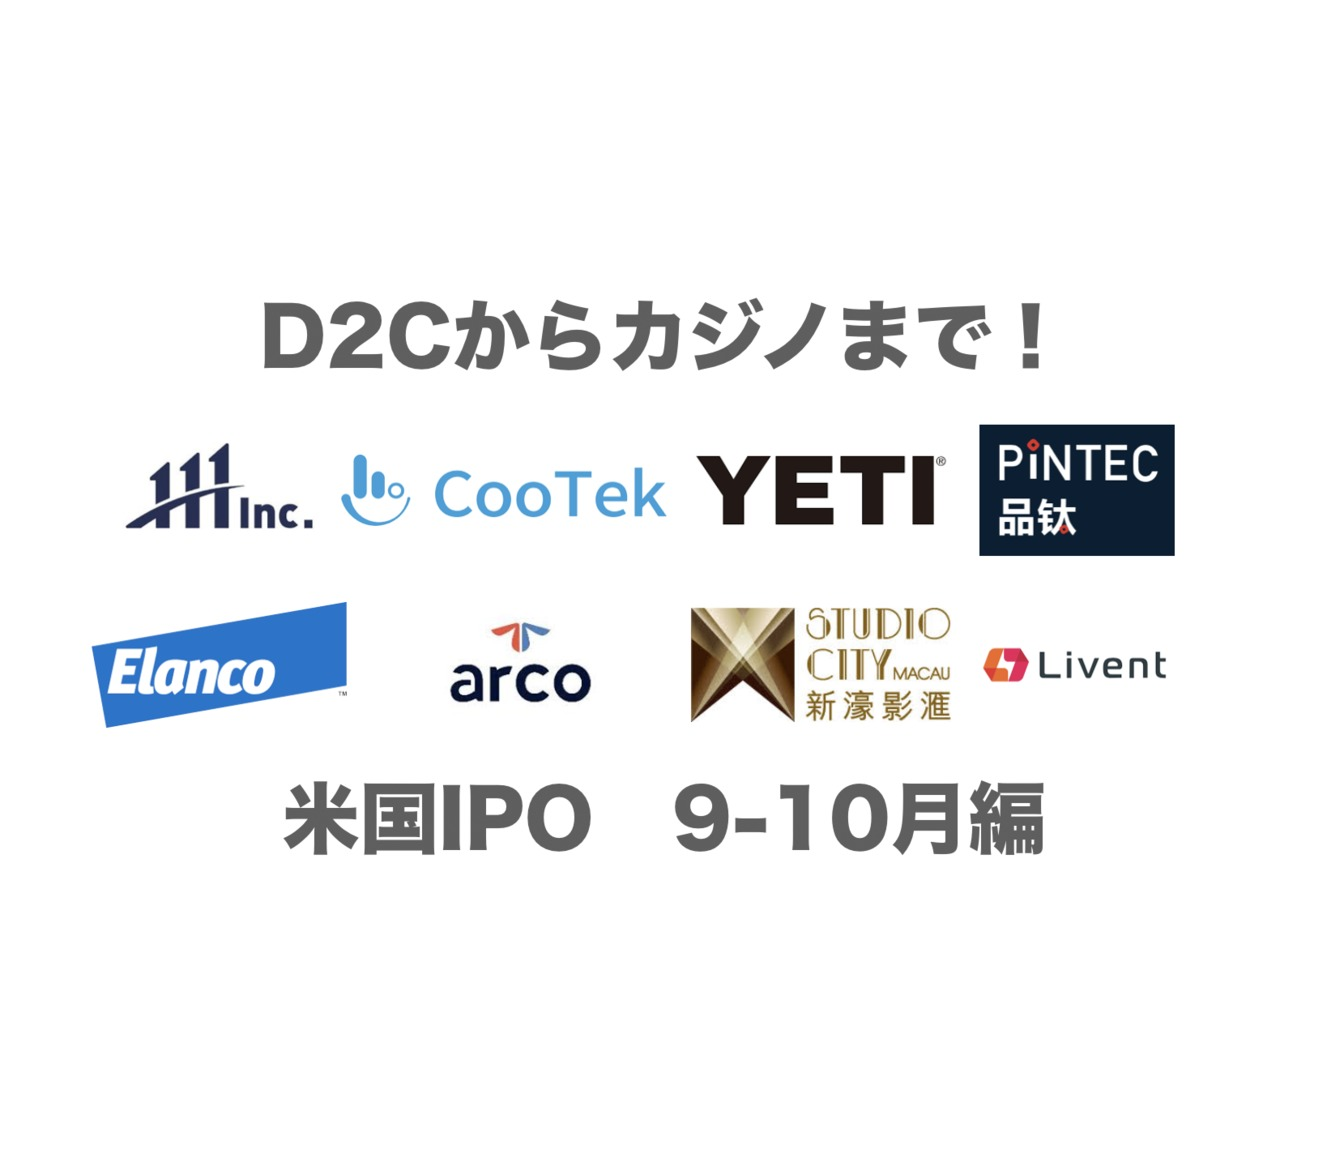 D2Cからカジノまで!9-10月の米国IPOで気になった8社を一気にチェック